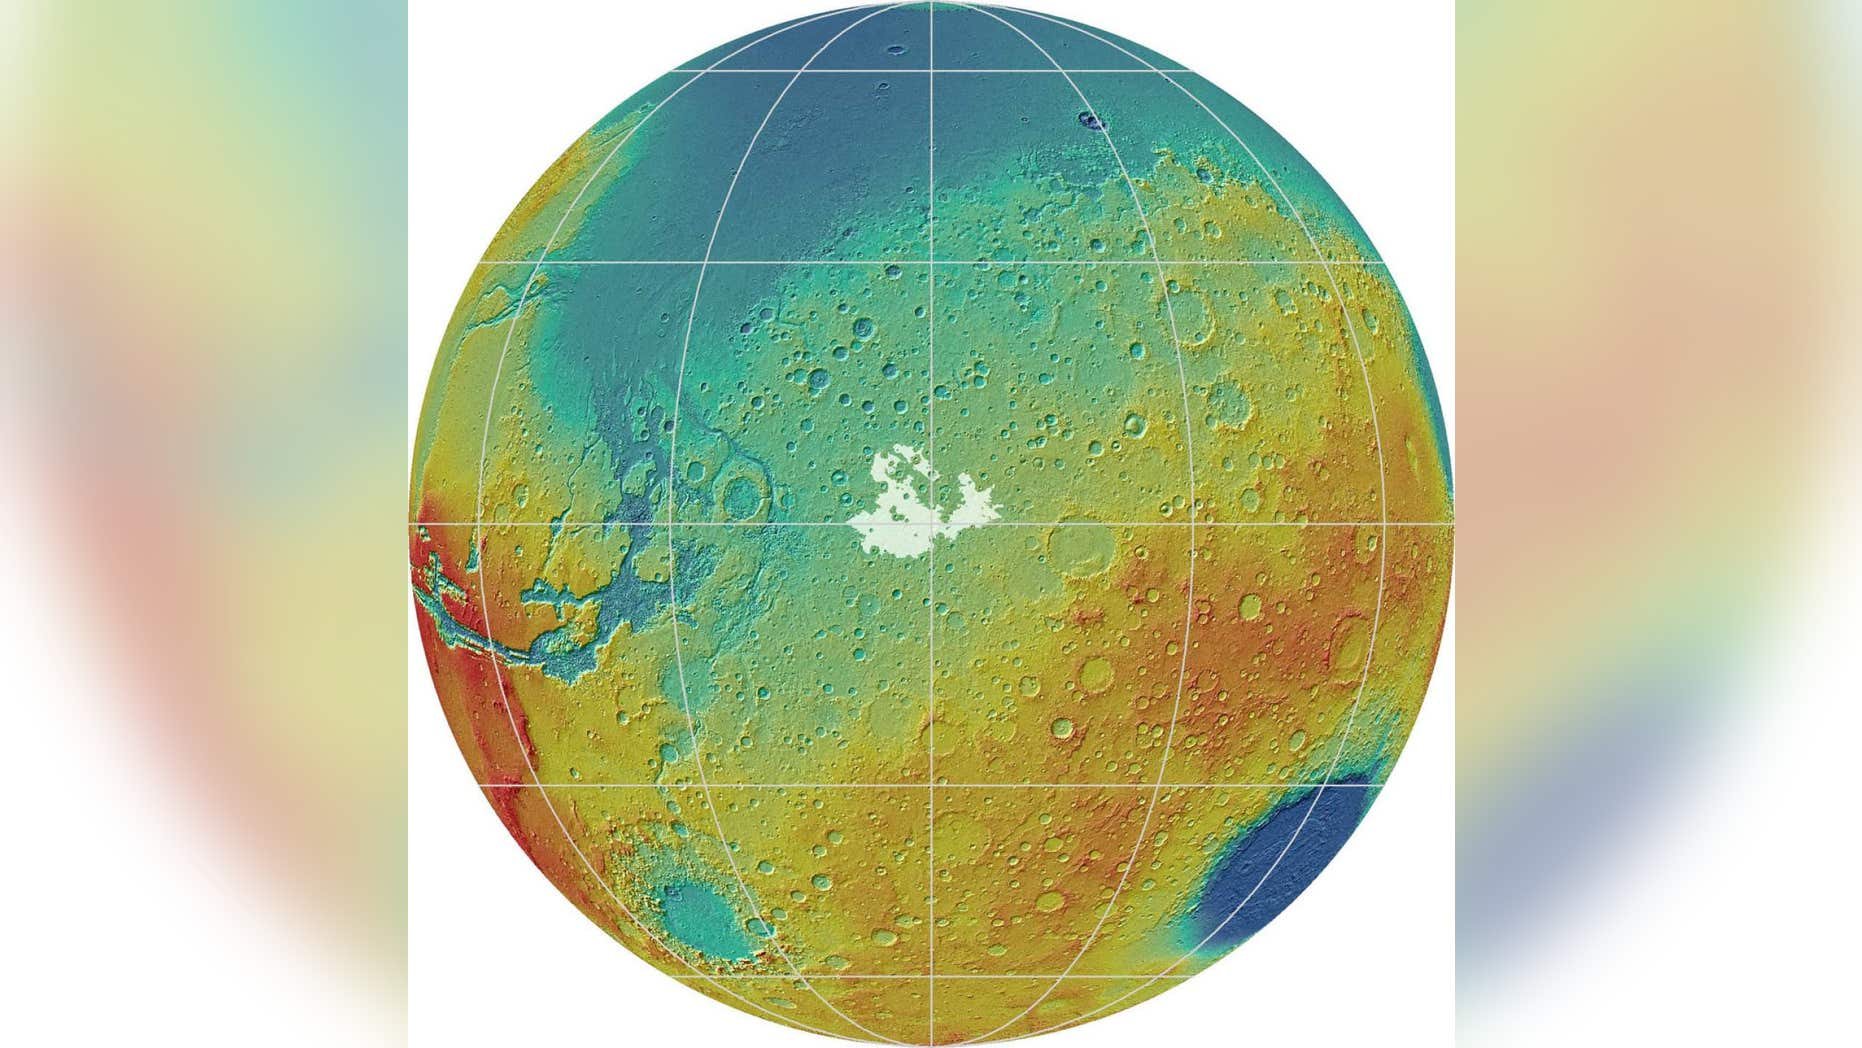 Mars' Meridiani Planum, along the planet's equator, is about 29,700 square miles (77,000 square kilometers) — approximately the size of South Carolina. Deposits on Meridiani Planum can be seen in white.